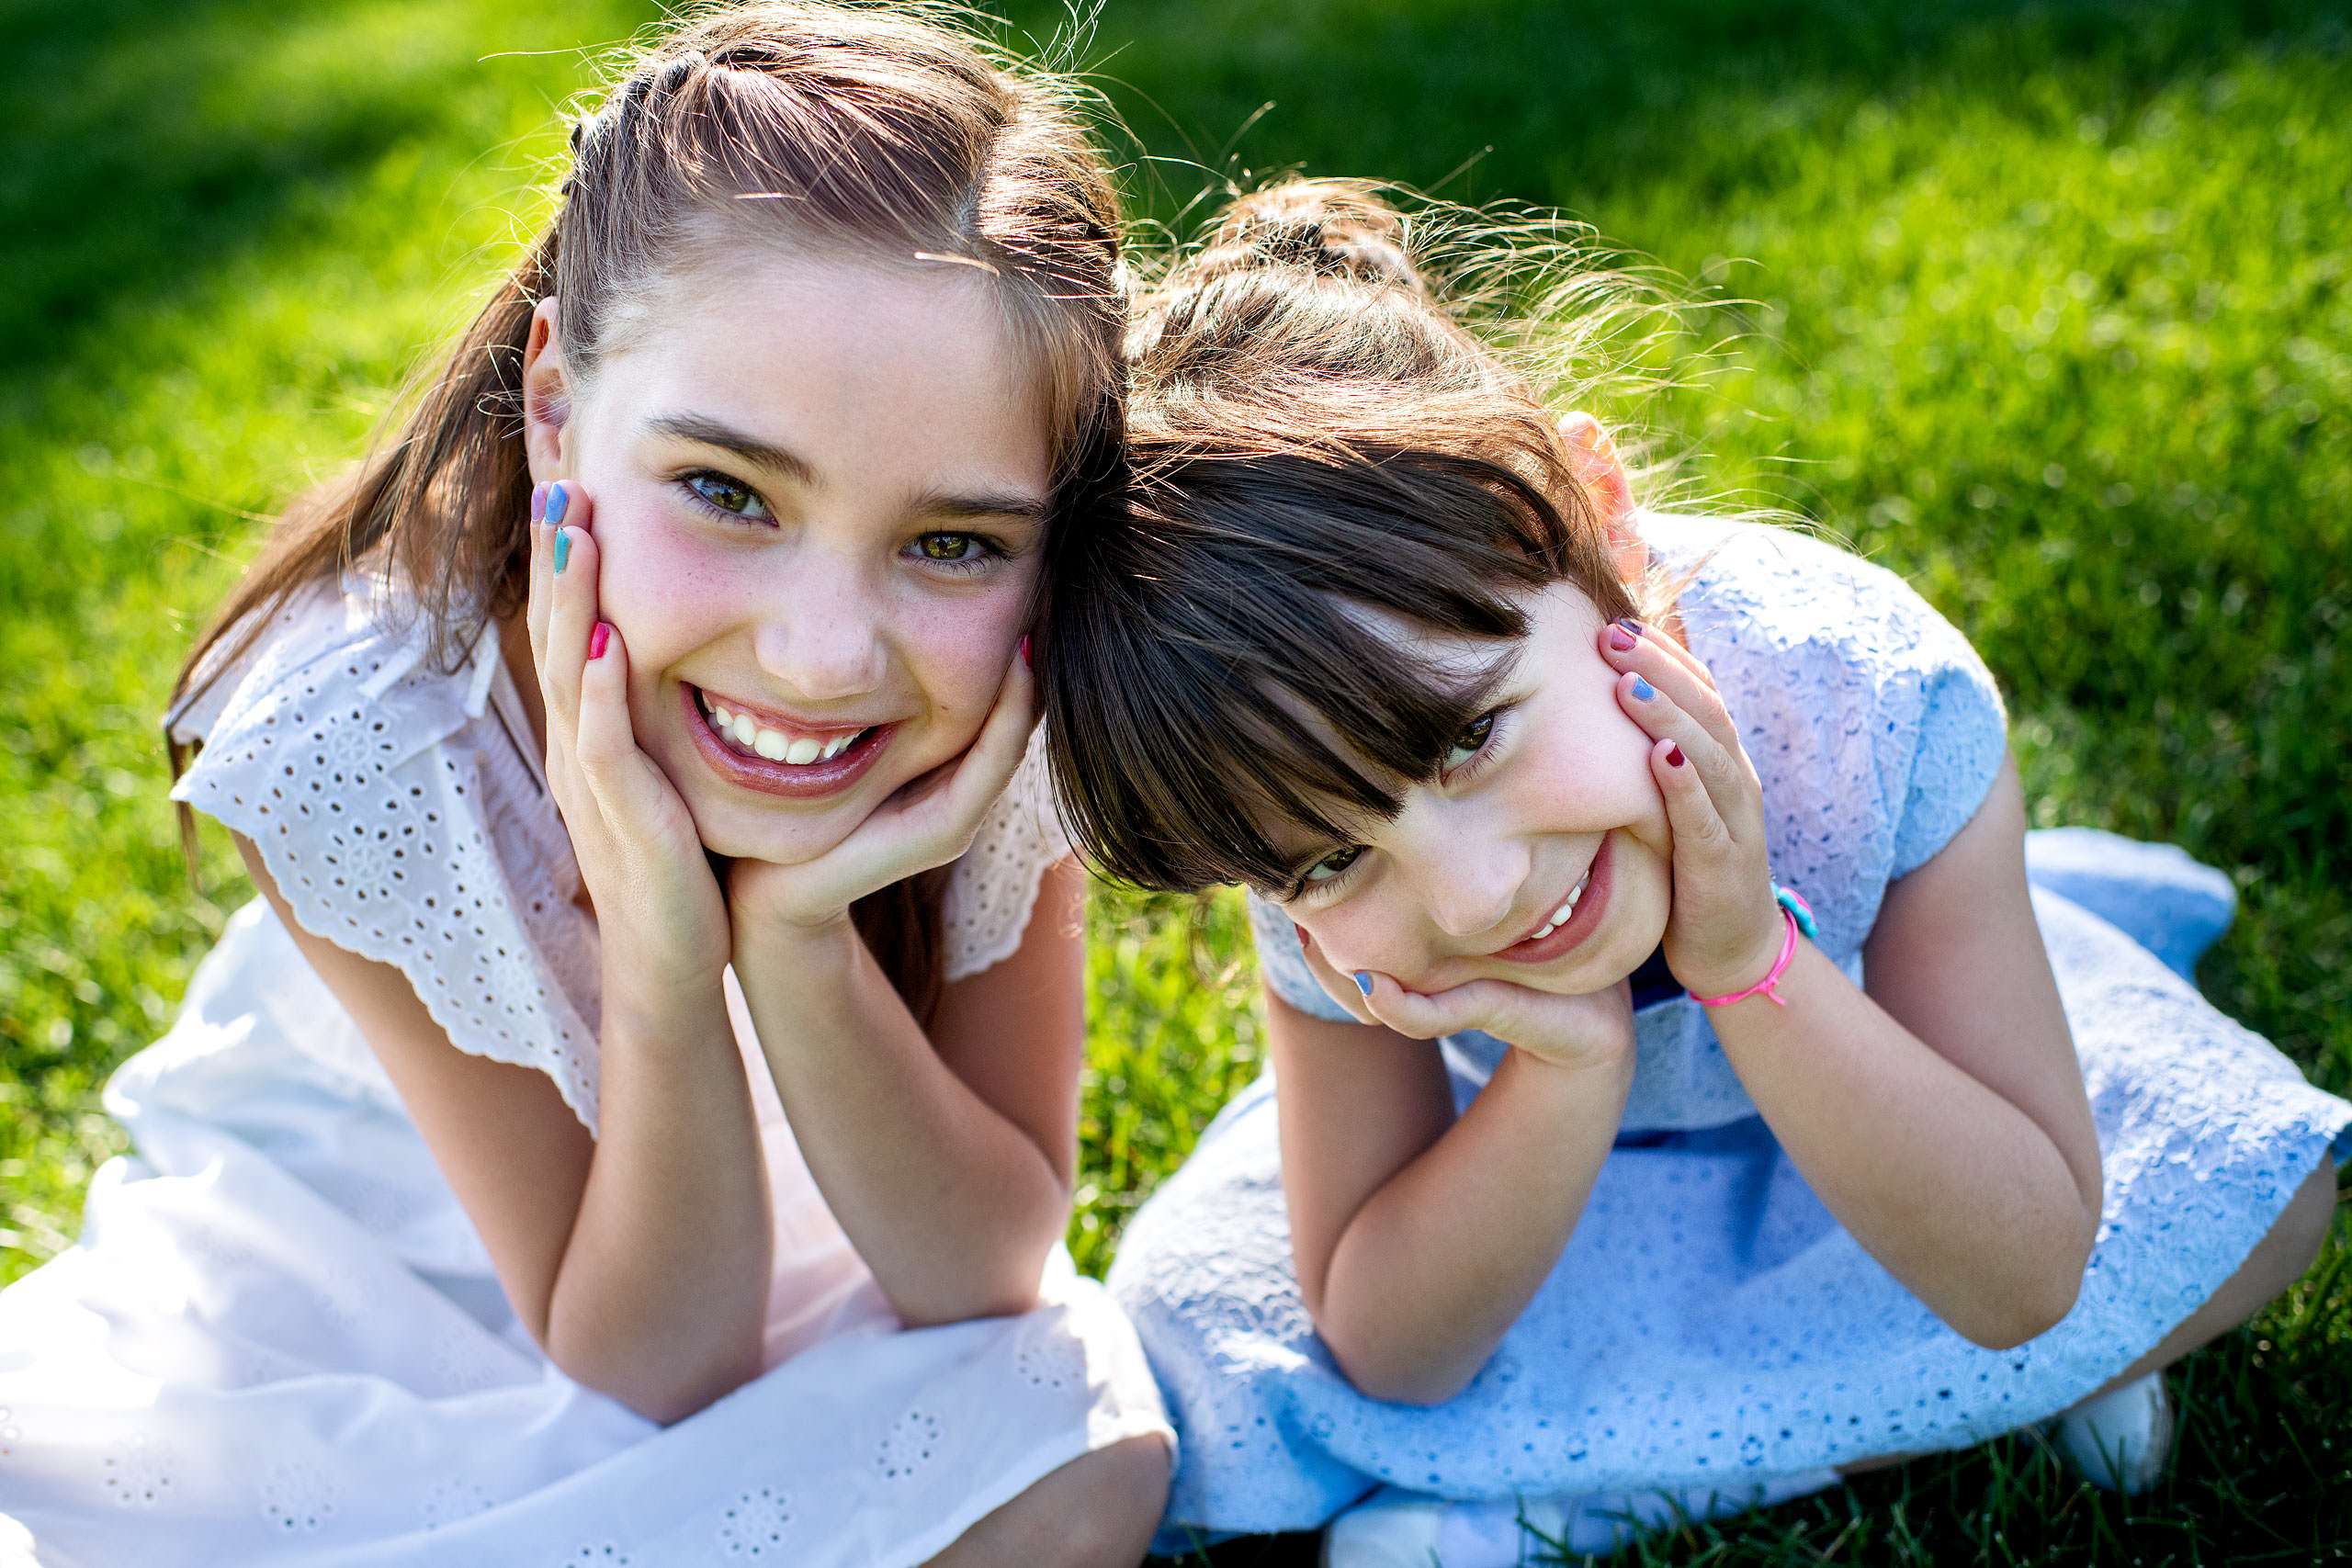 two young girls smiling together taken by family photographer sean leblanc